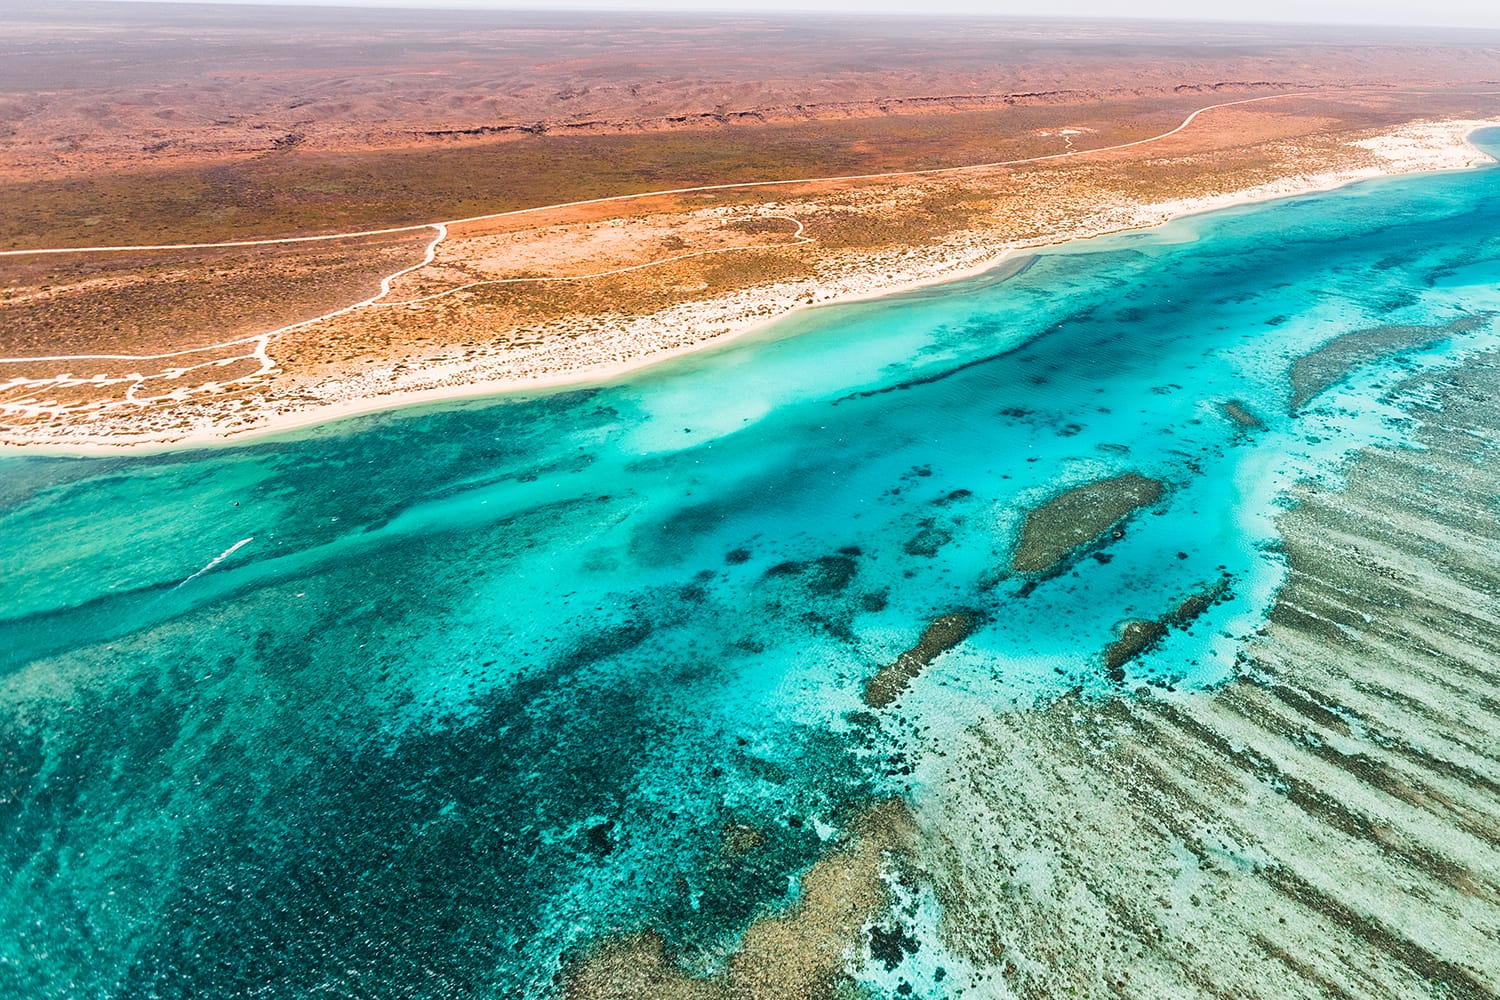 Aerial view of the Ningaloo Reef in Exmouth, Australia